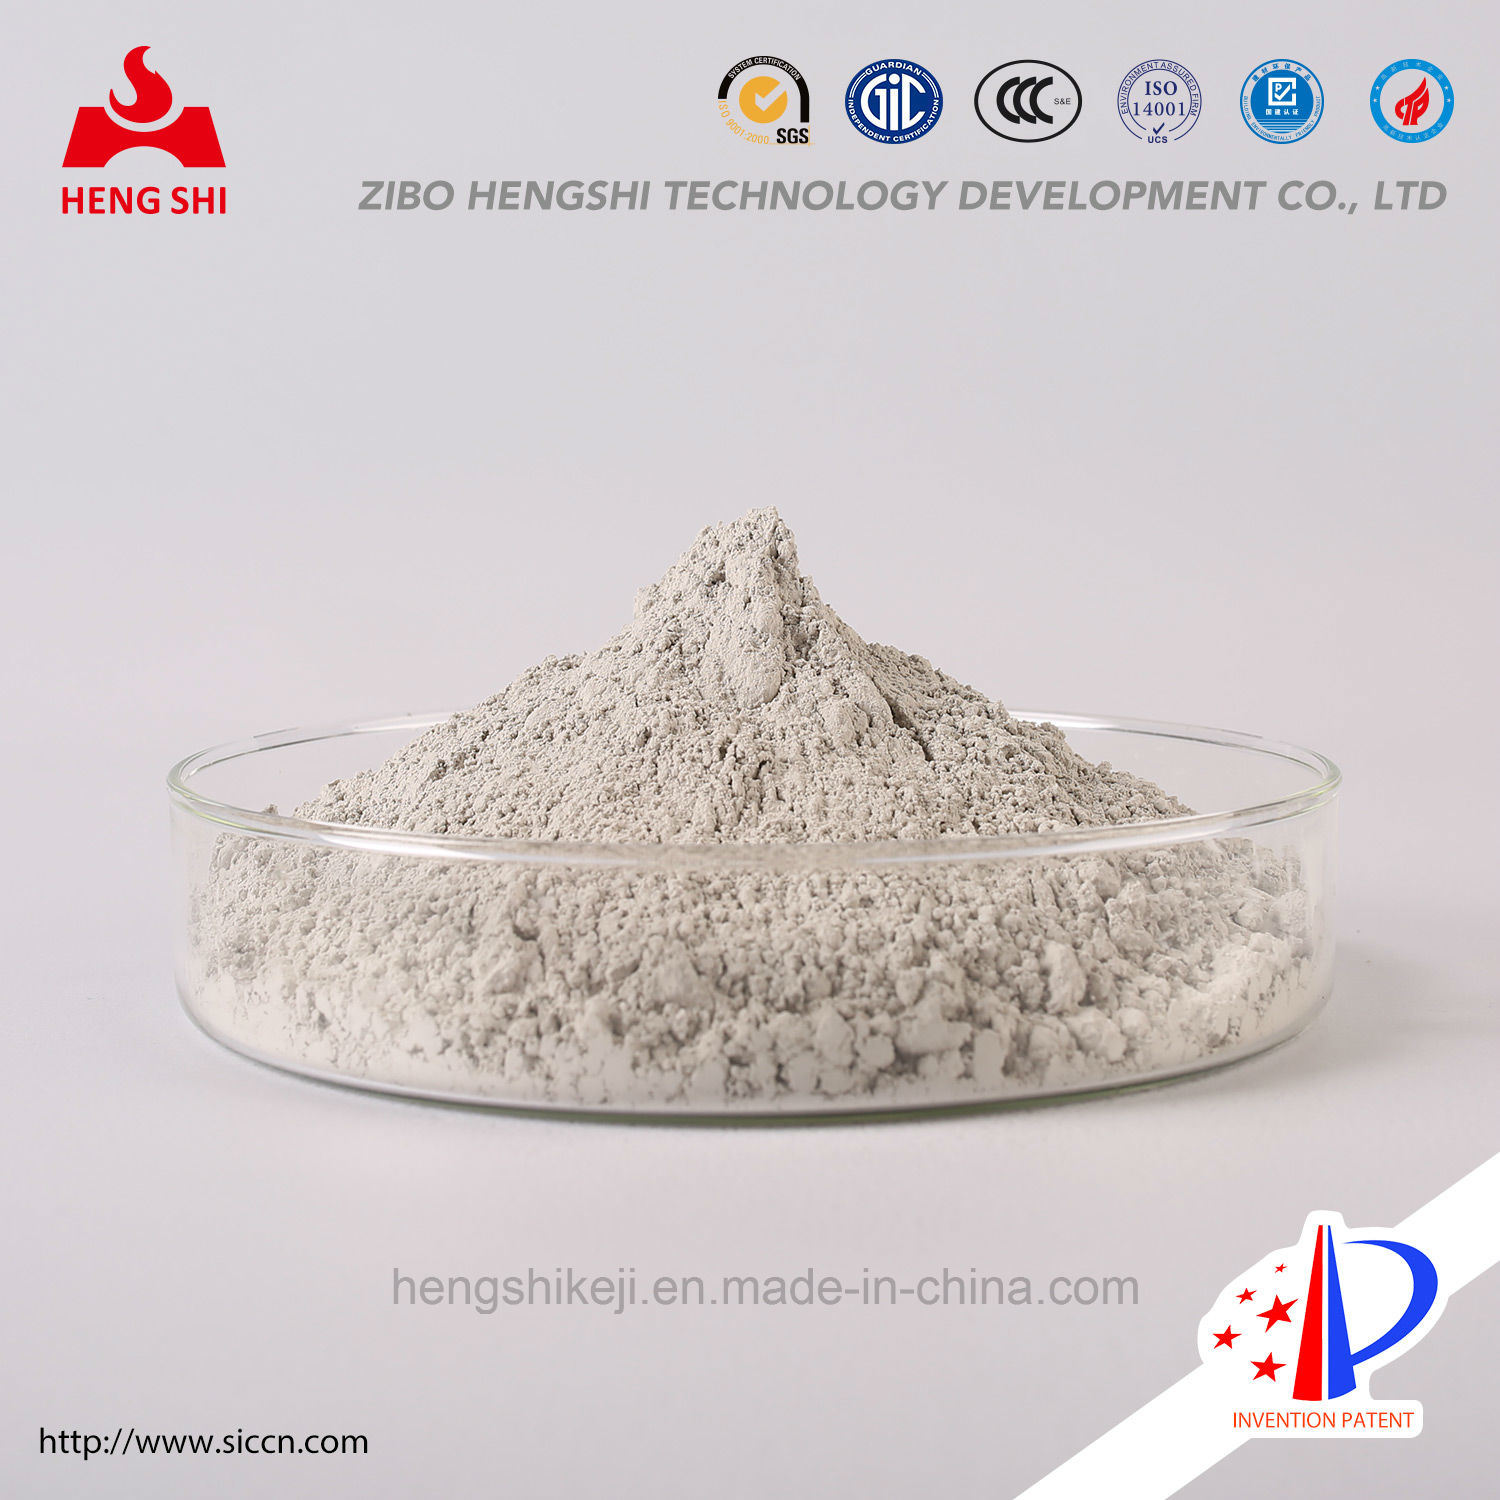 Manufacture Supply New-Type Chemical Raw Material Silicon Nitride Powder